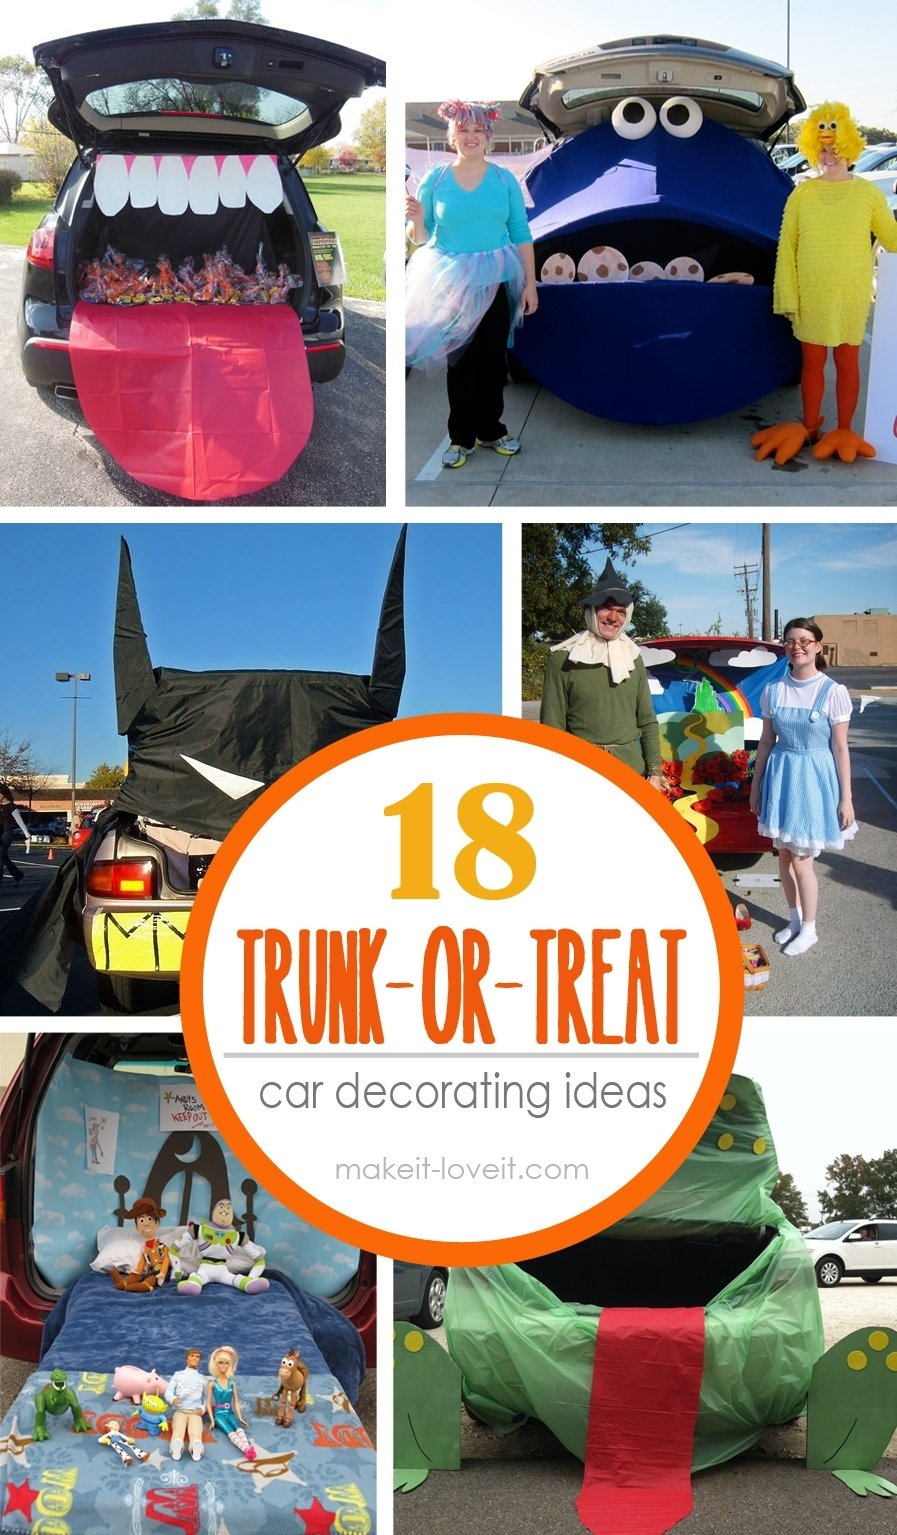 10 Cute Trunk And Treat Ideas For Decorating 18 trunk or treat car decorating ideas decoration cars and car 2020